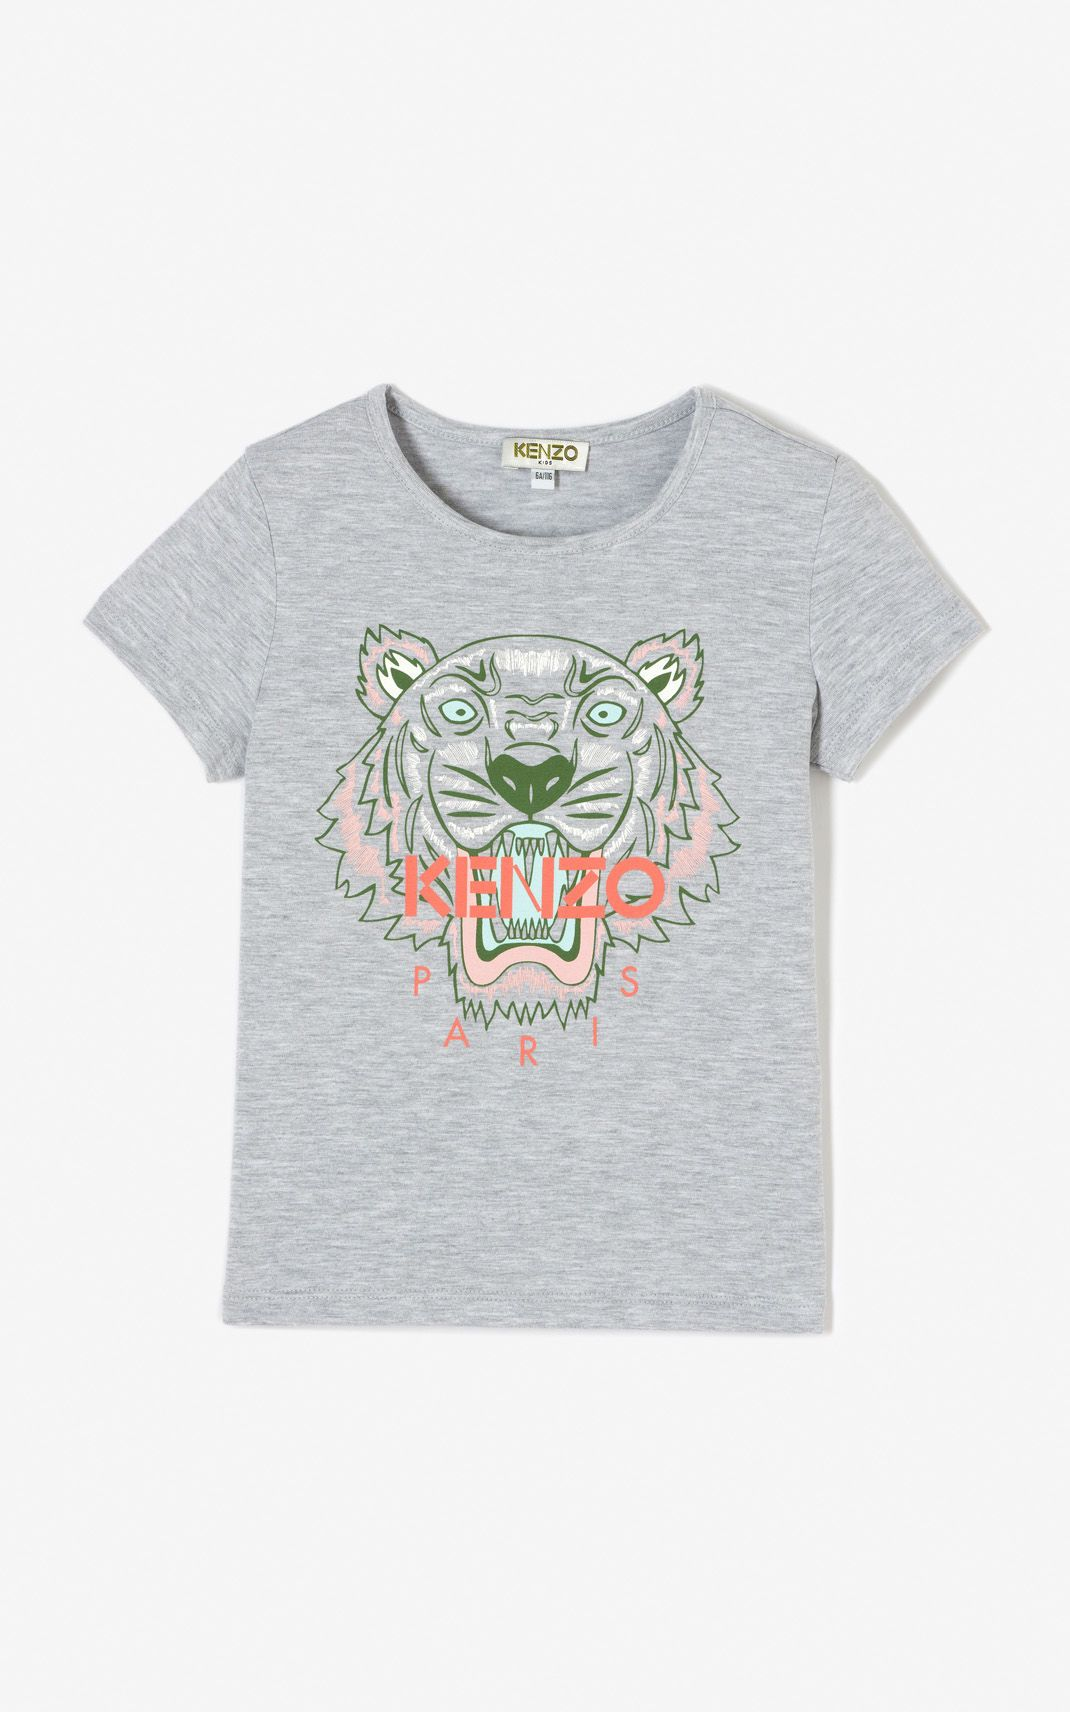 98ae9a431 MIDDLE GREY Tiger t-shirt for women KENZO   Kenzo Summer 18 ...